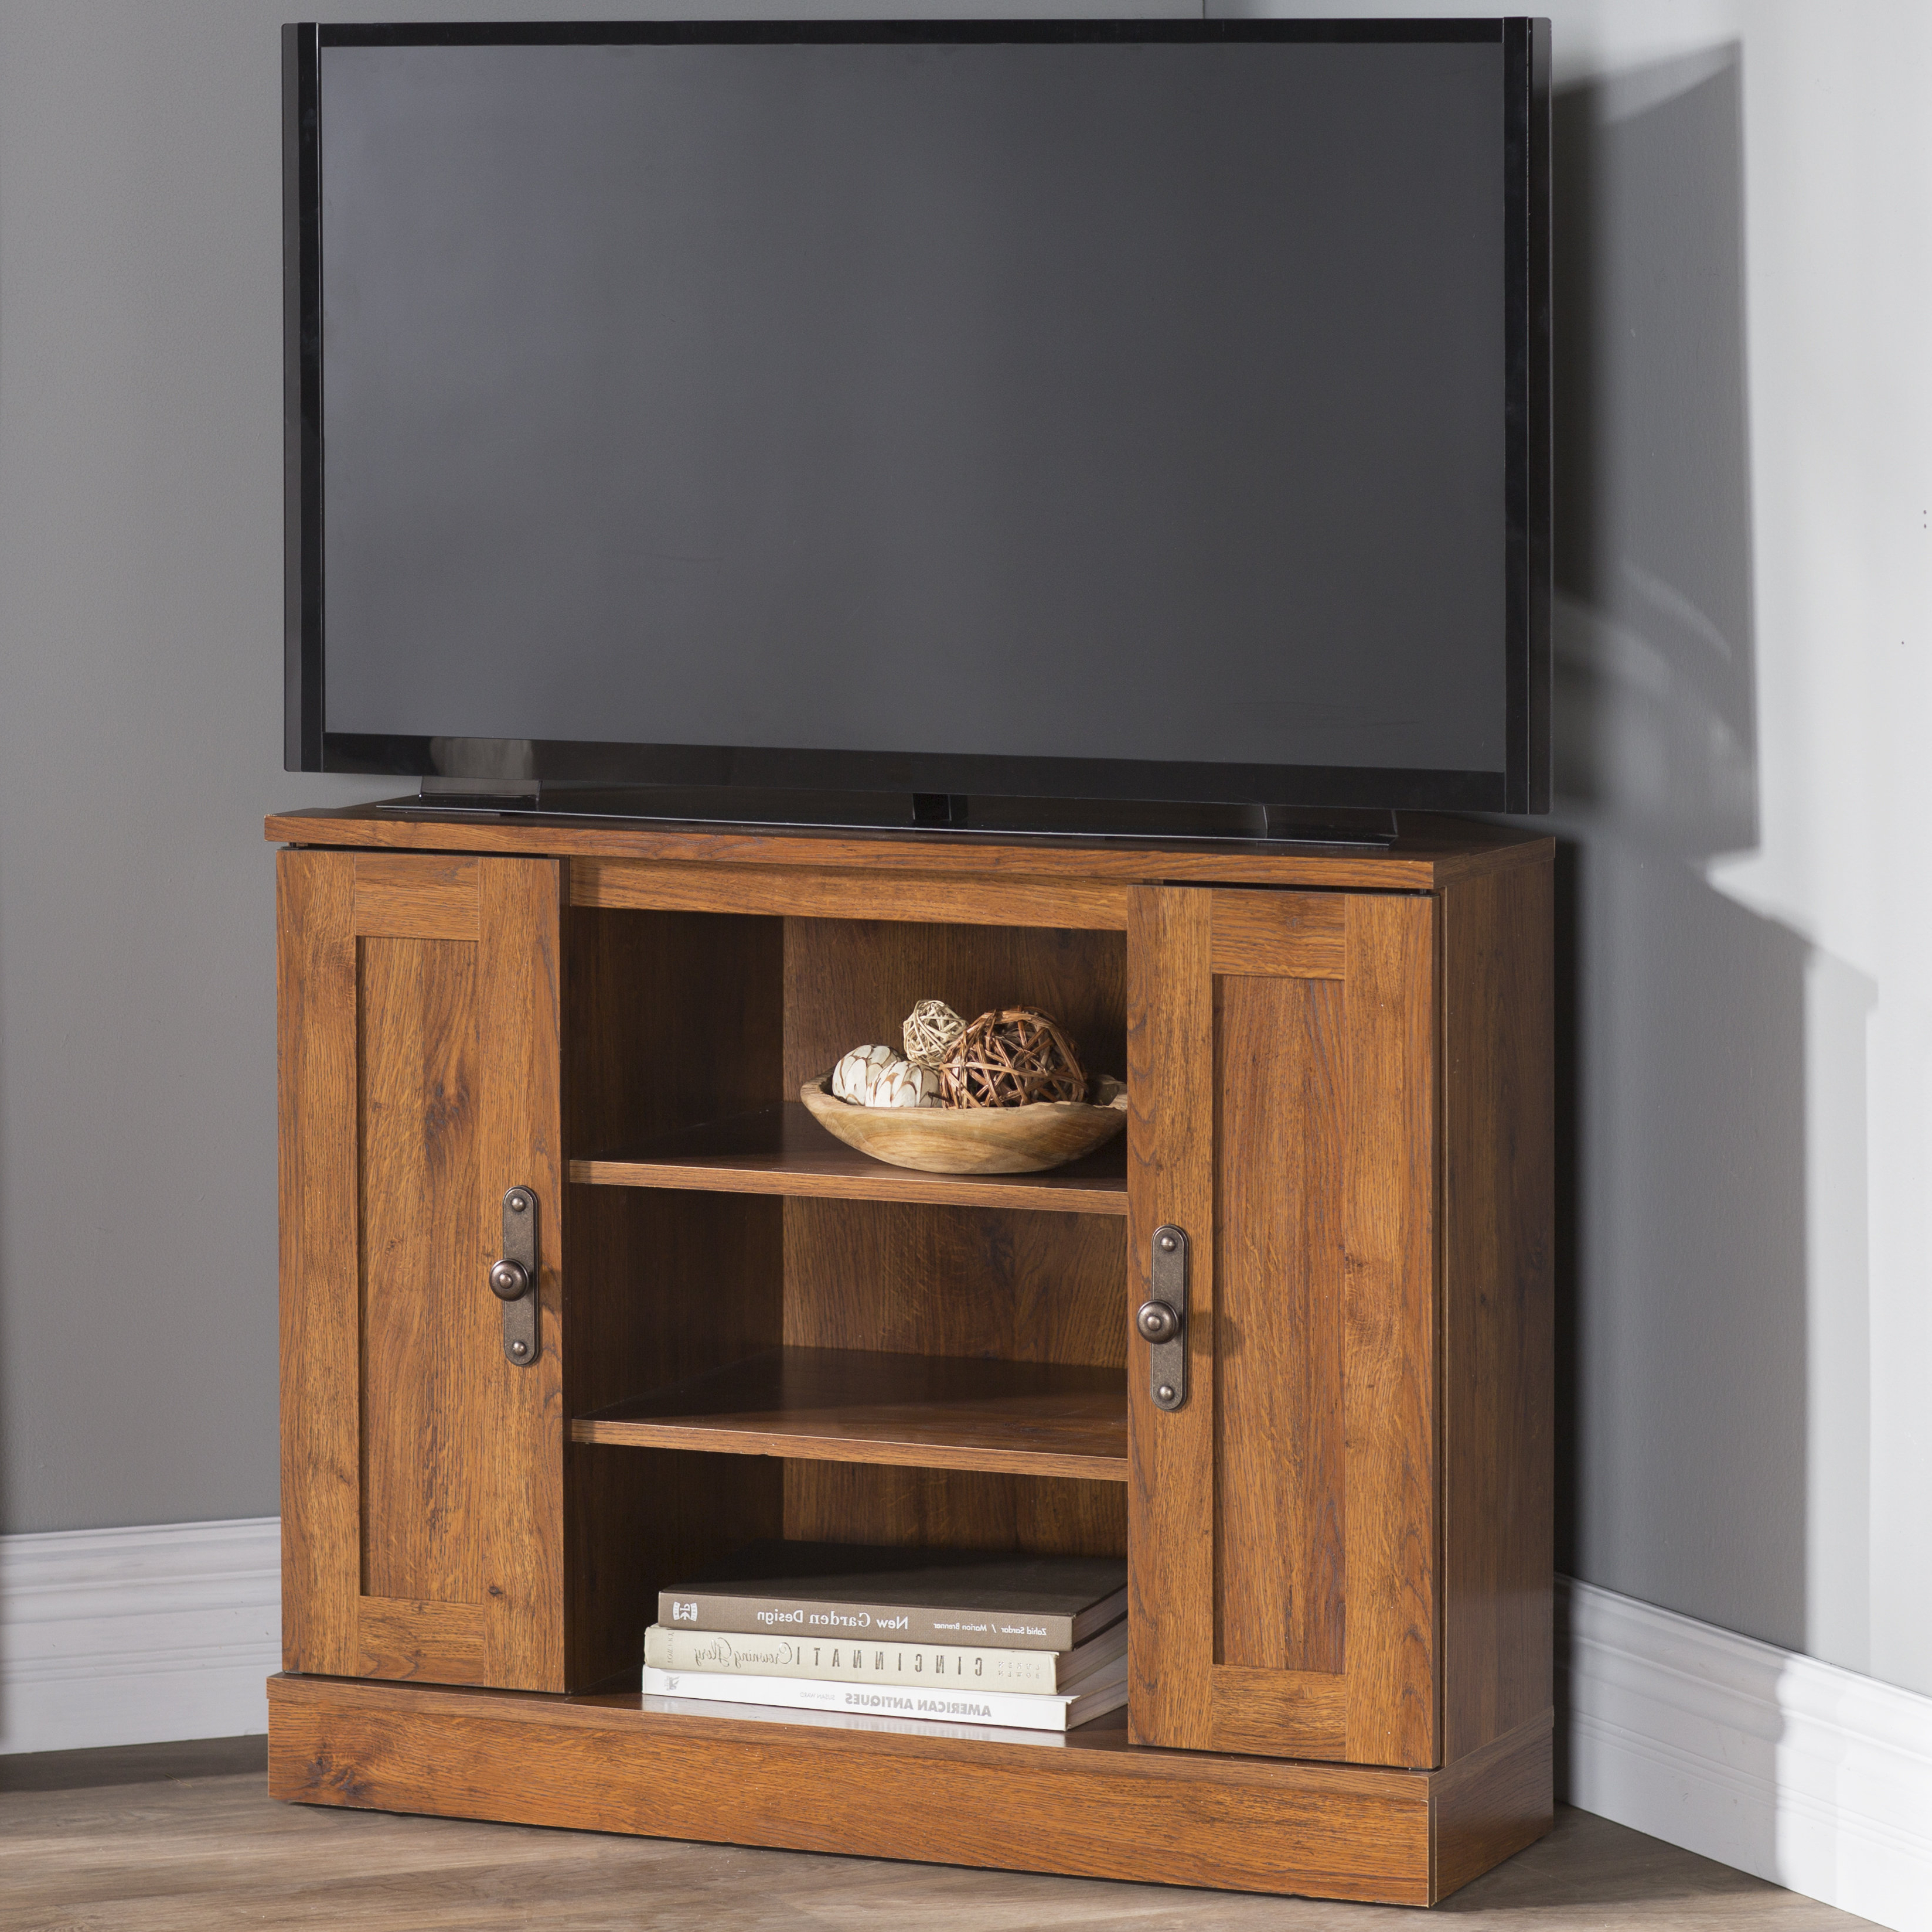 Best And Newest Corner Tv Stands You'll Love In Tv Stands For Corners (View 3 of 20)